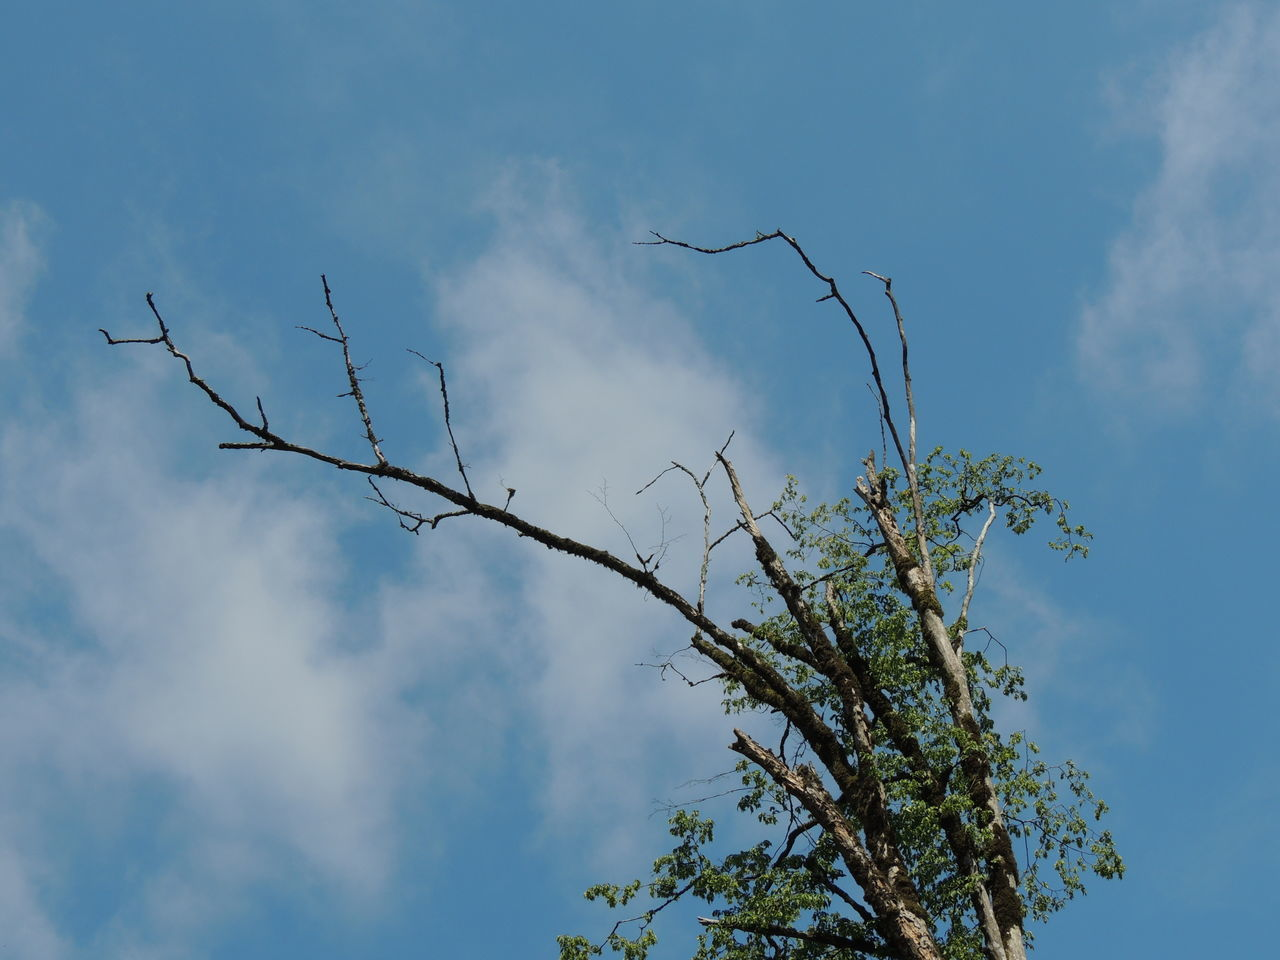 sky, low angle view, tree, day, branch, cloud - sky, no people, nature, outdoors, growth, blue, beauty in nature, bare tree